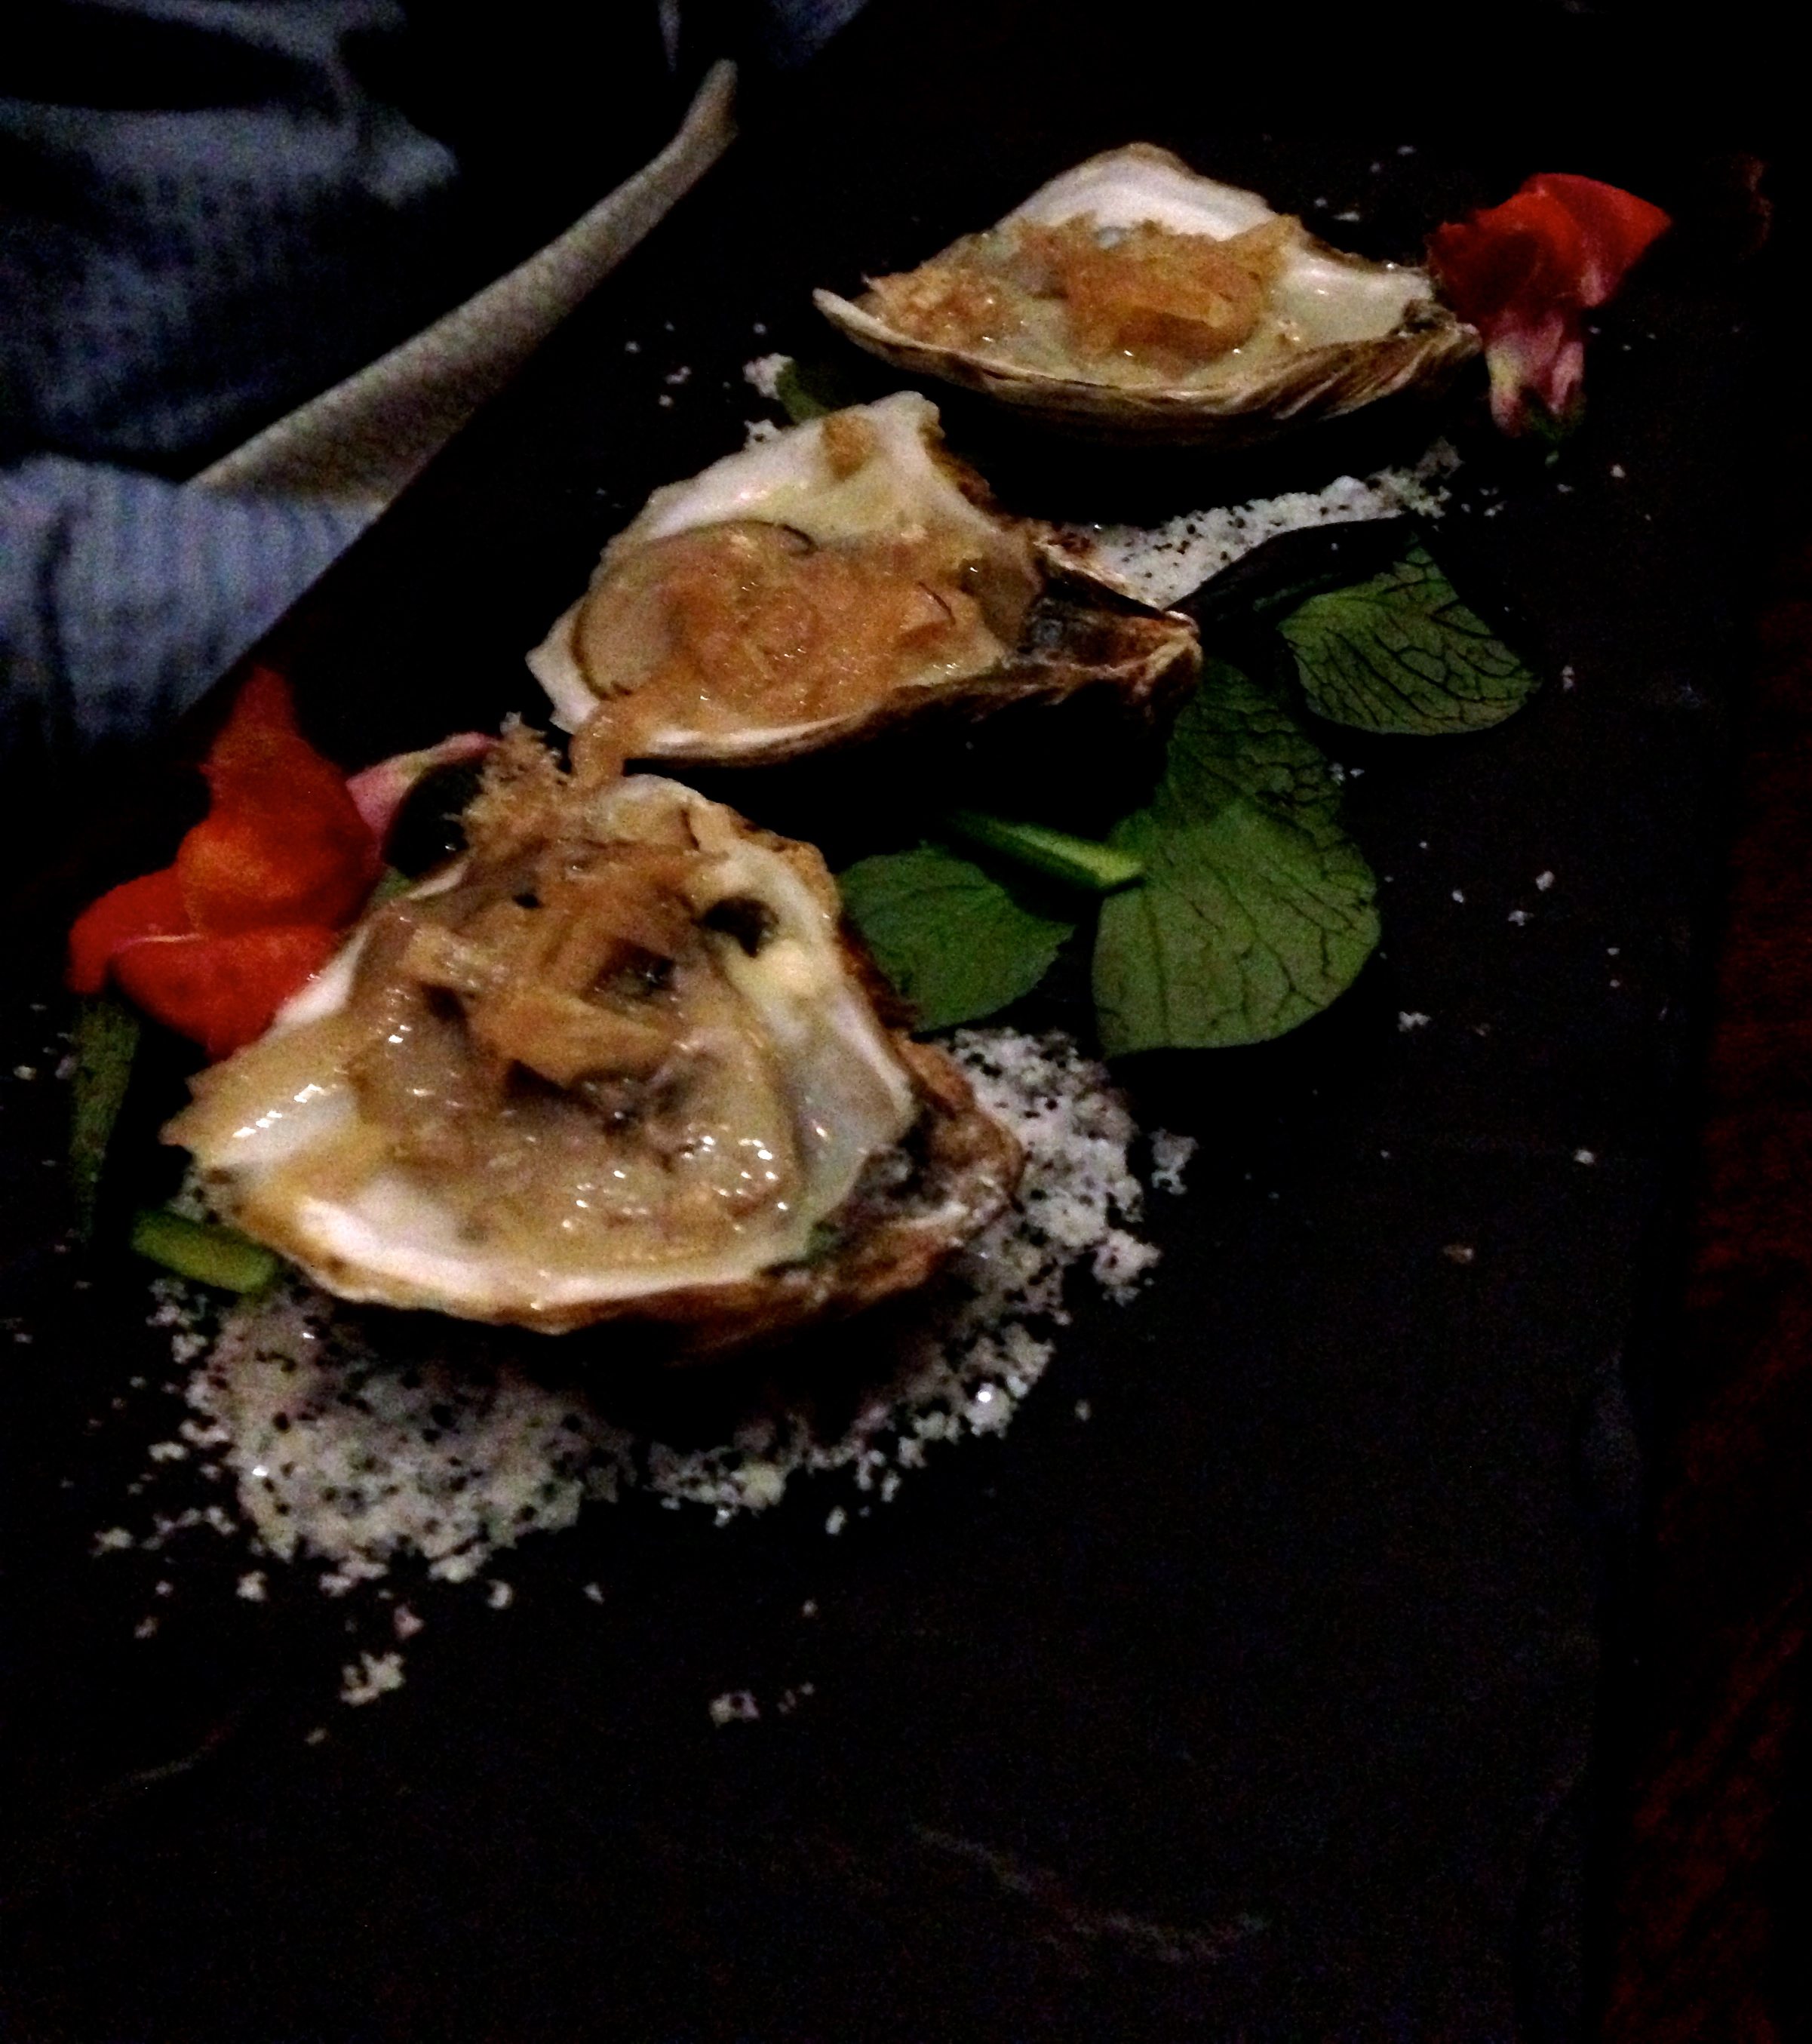 Figure 4. Naked cowboy oysters with hoppy pickled radishes and chicharrones